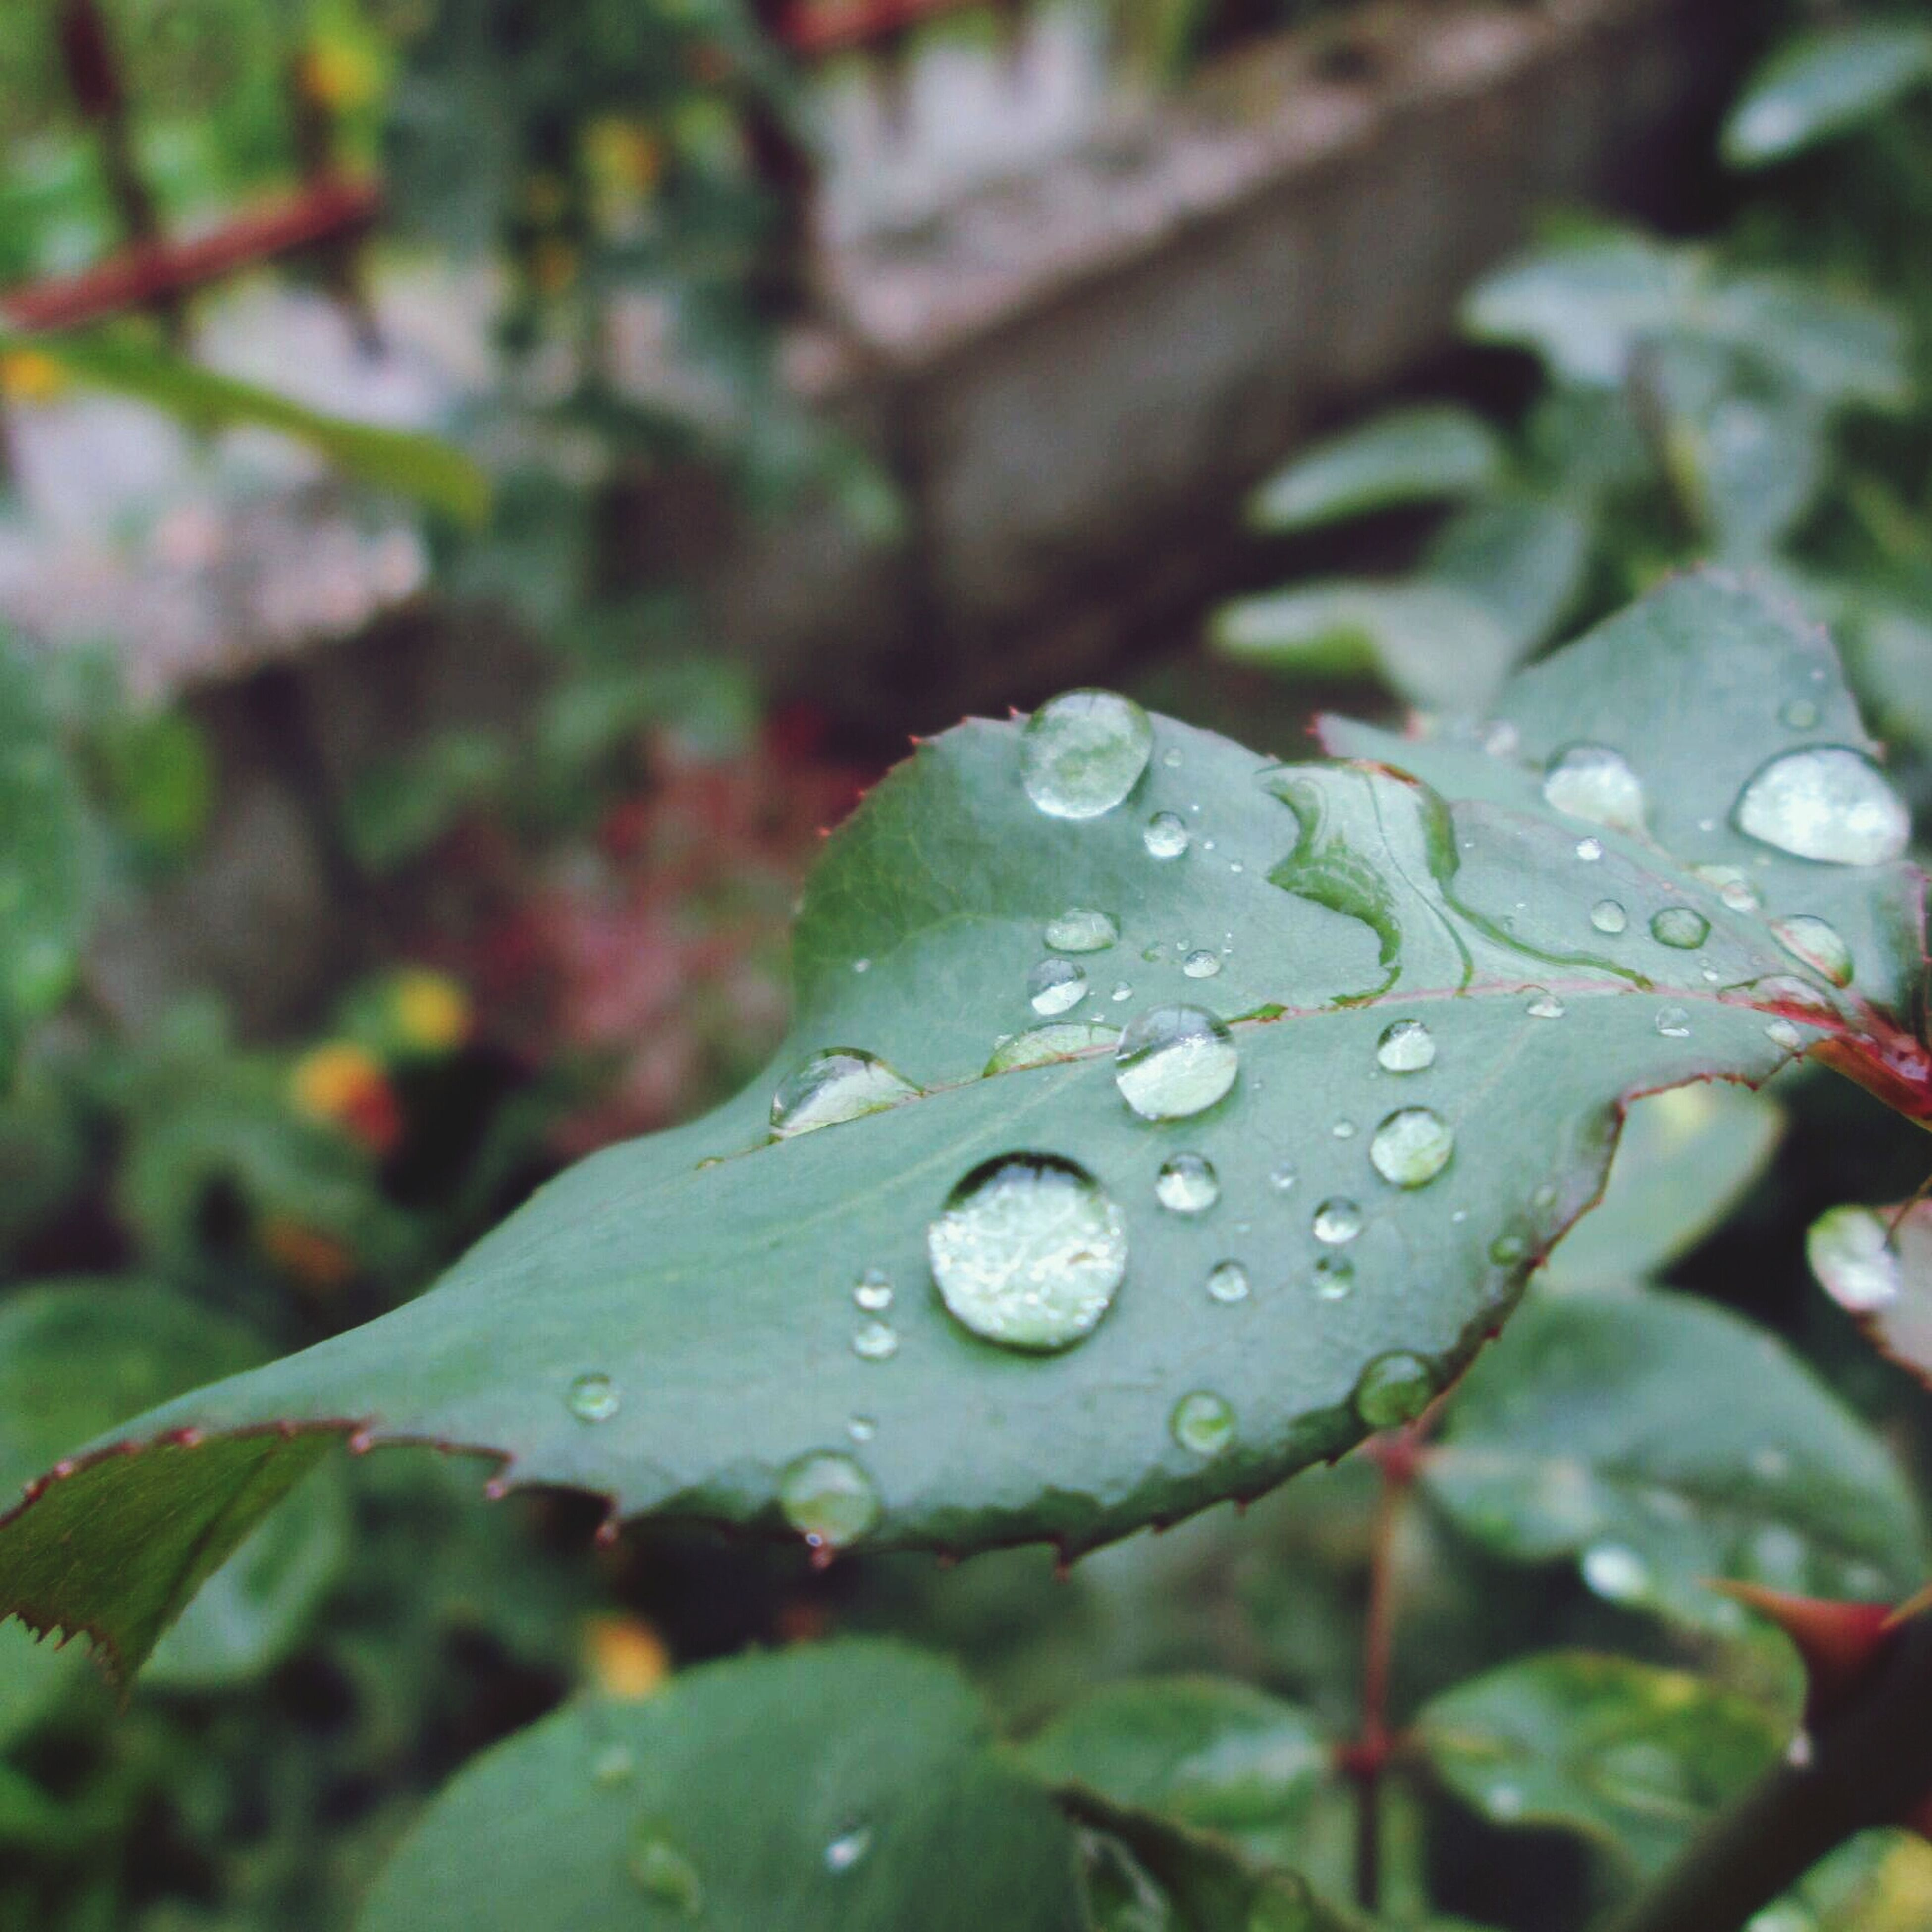 drop, leaf, water, wet, growth, close-up, freshness, dew, plant, green color, nature, raindrop, beauty in nature, fragility, focus on foreground, rain, leaf vein, season, weather, selective focus